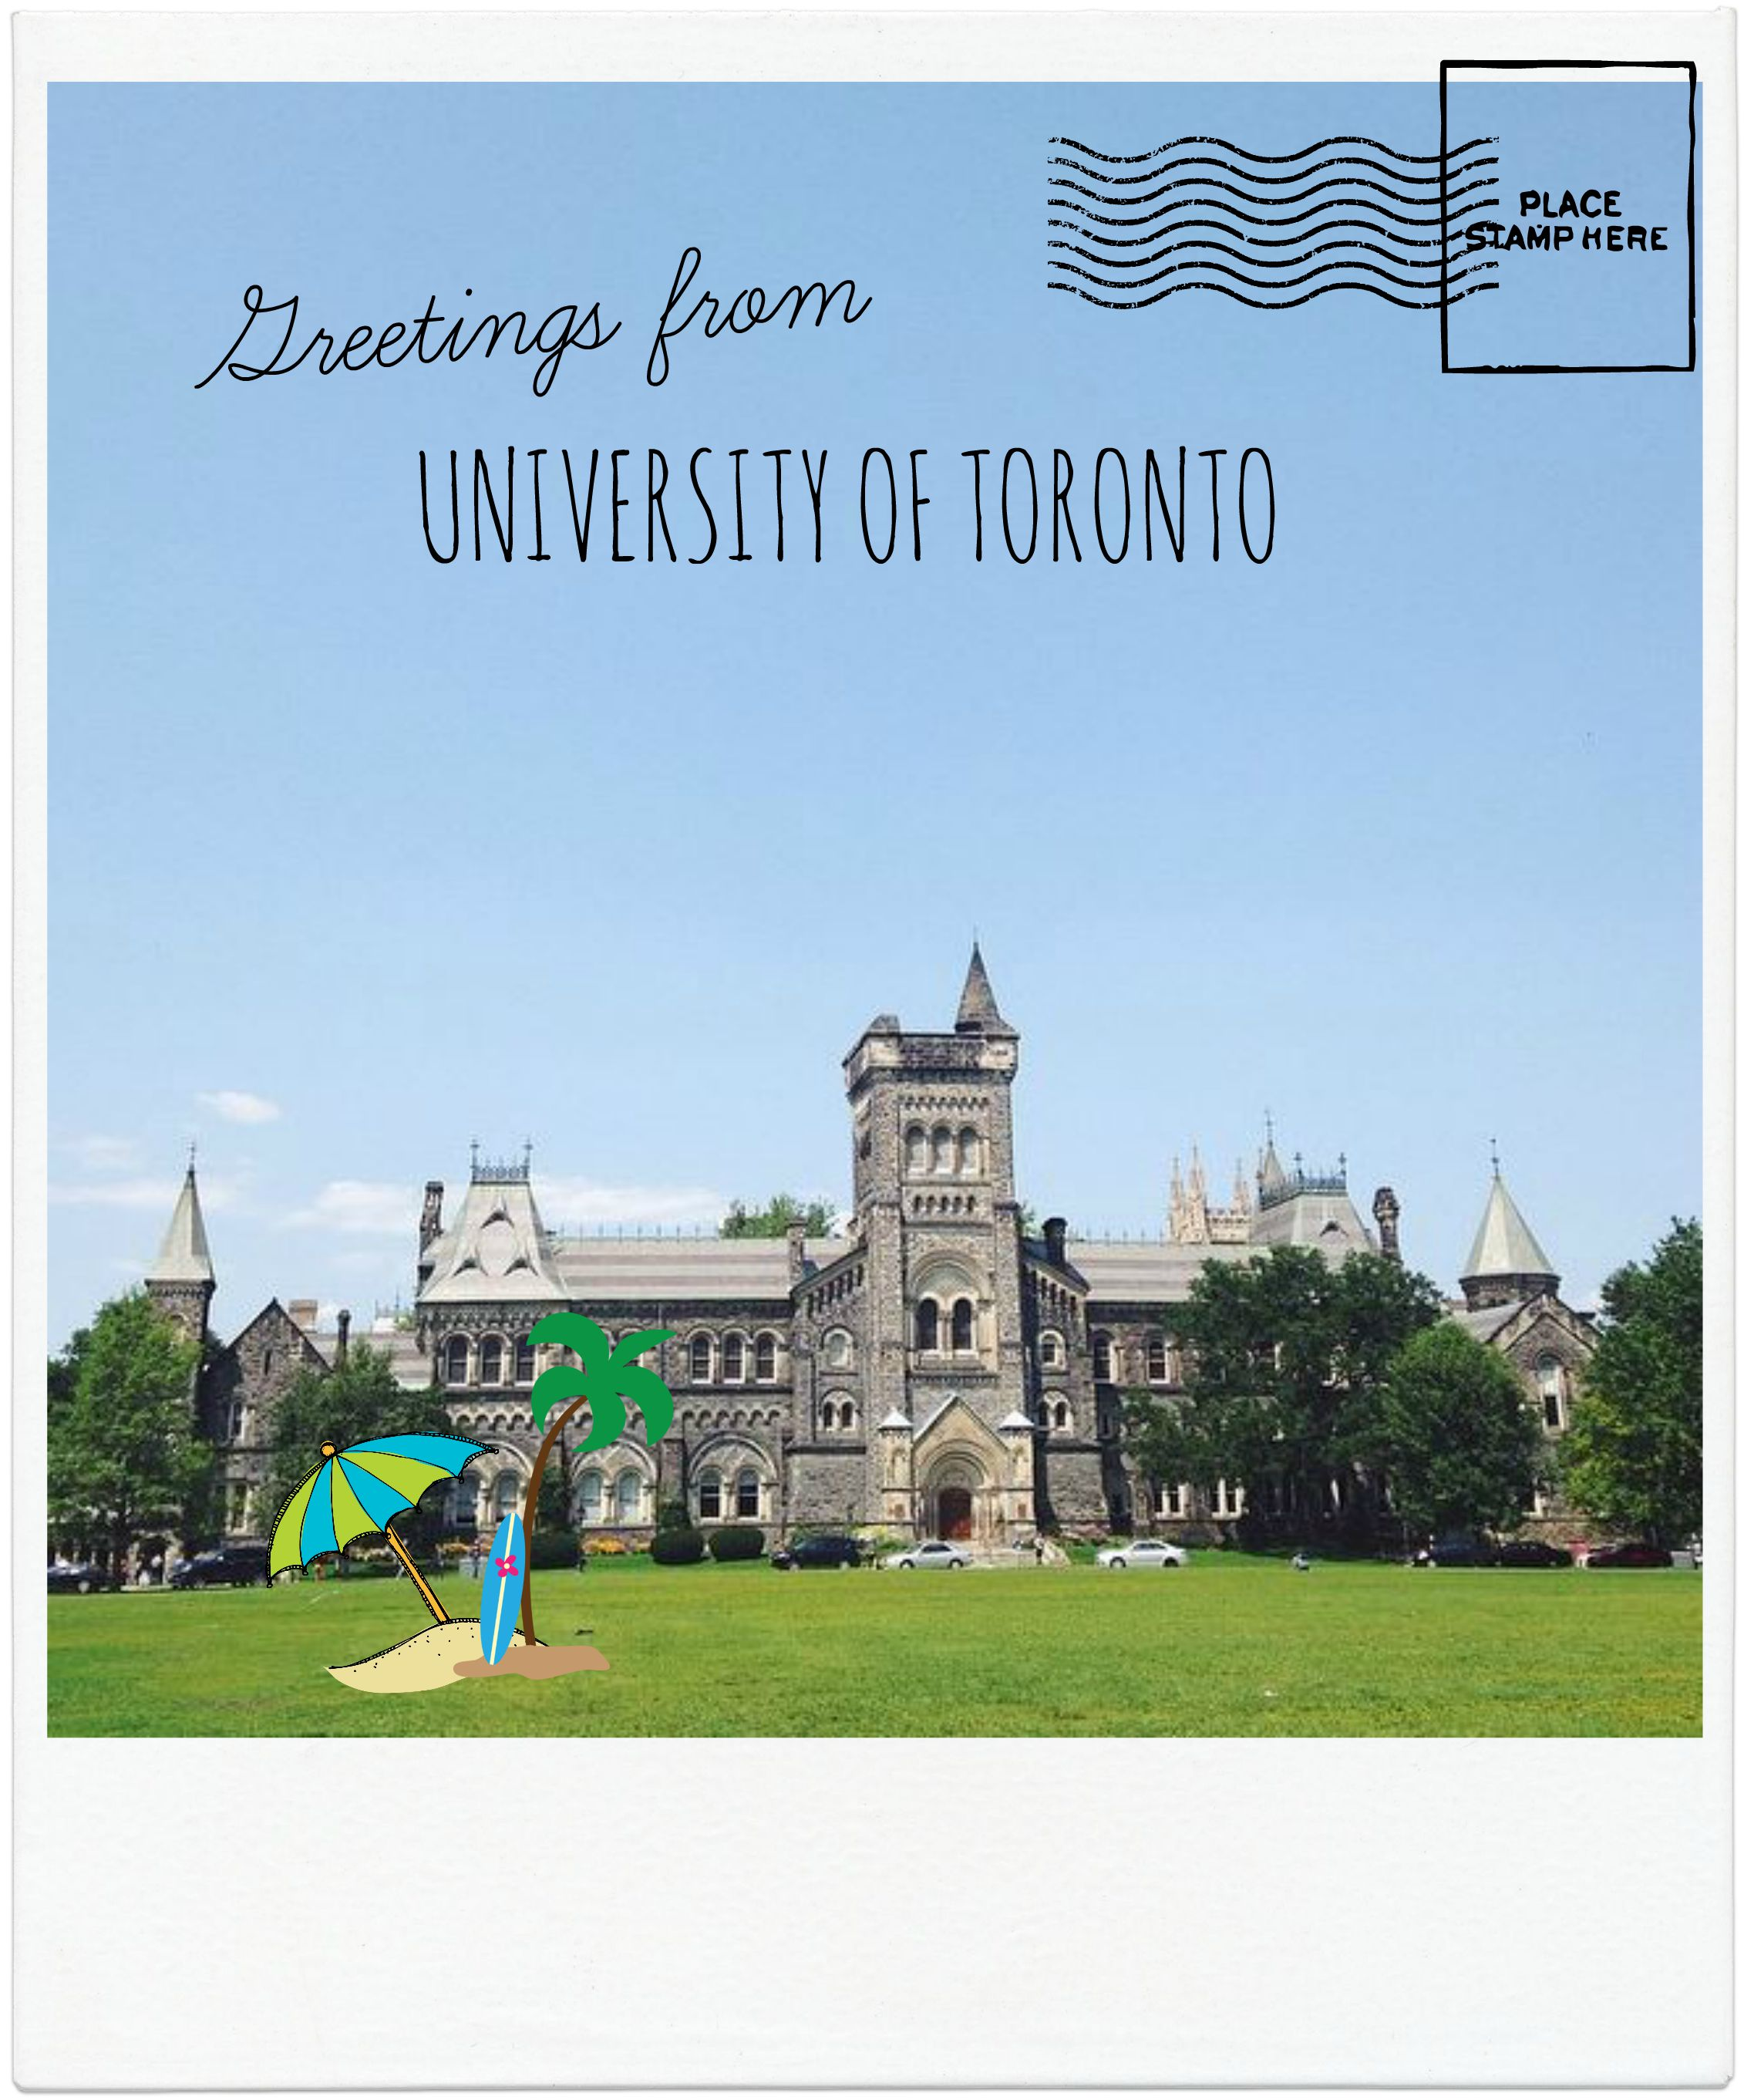 "A picture of King's College Circle with clip art of a beach umbrella and a palm tree that reads ""Greetings from UNIVERSITY OF TORONTO""."